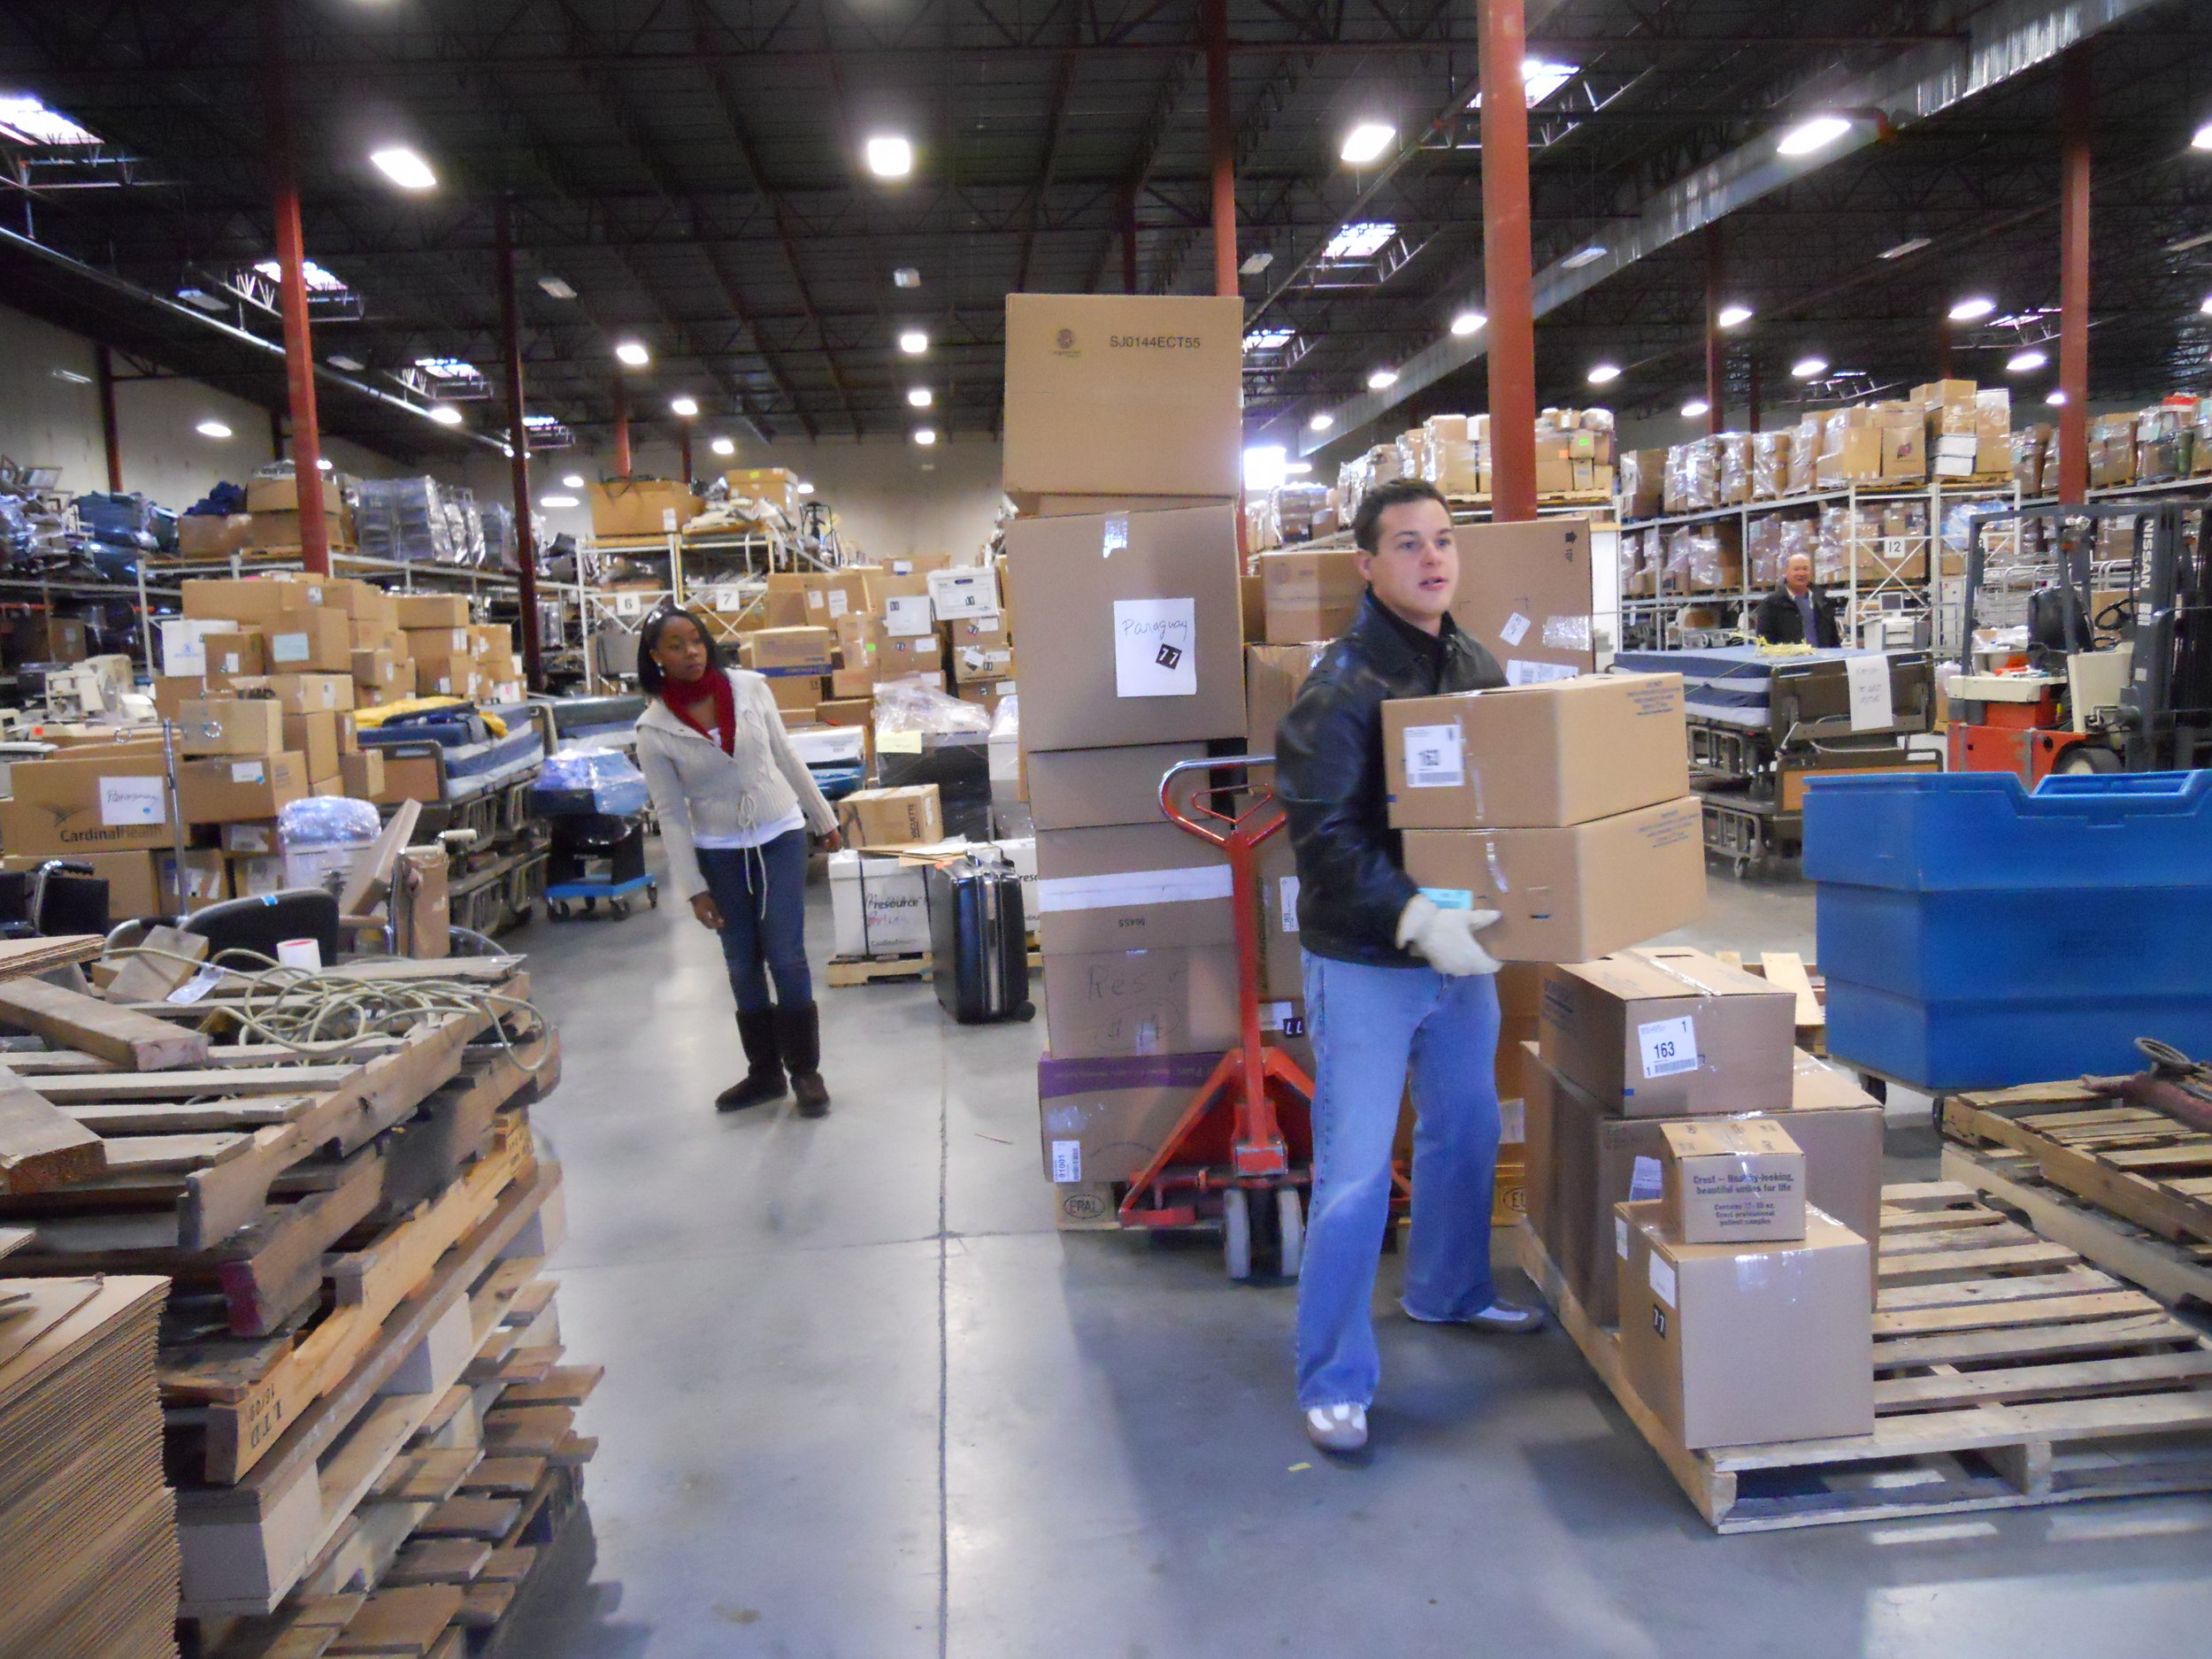 Project C.U.R.E. volunteers in the warehouse